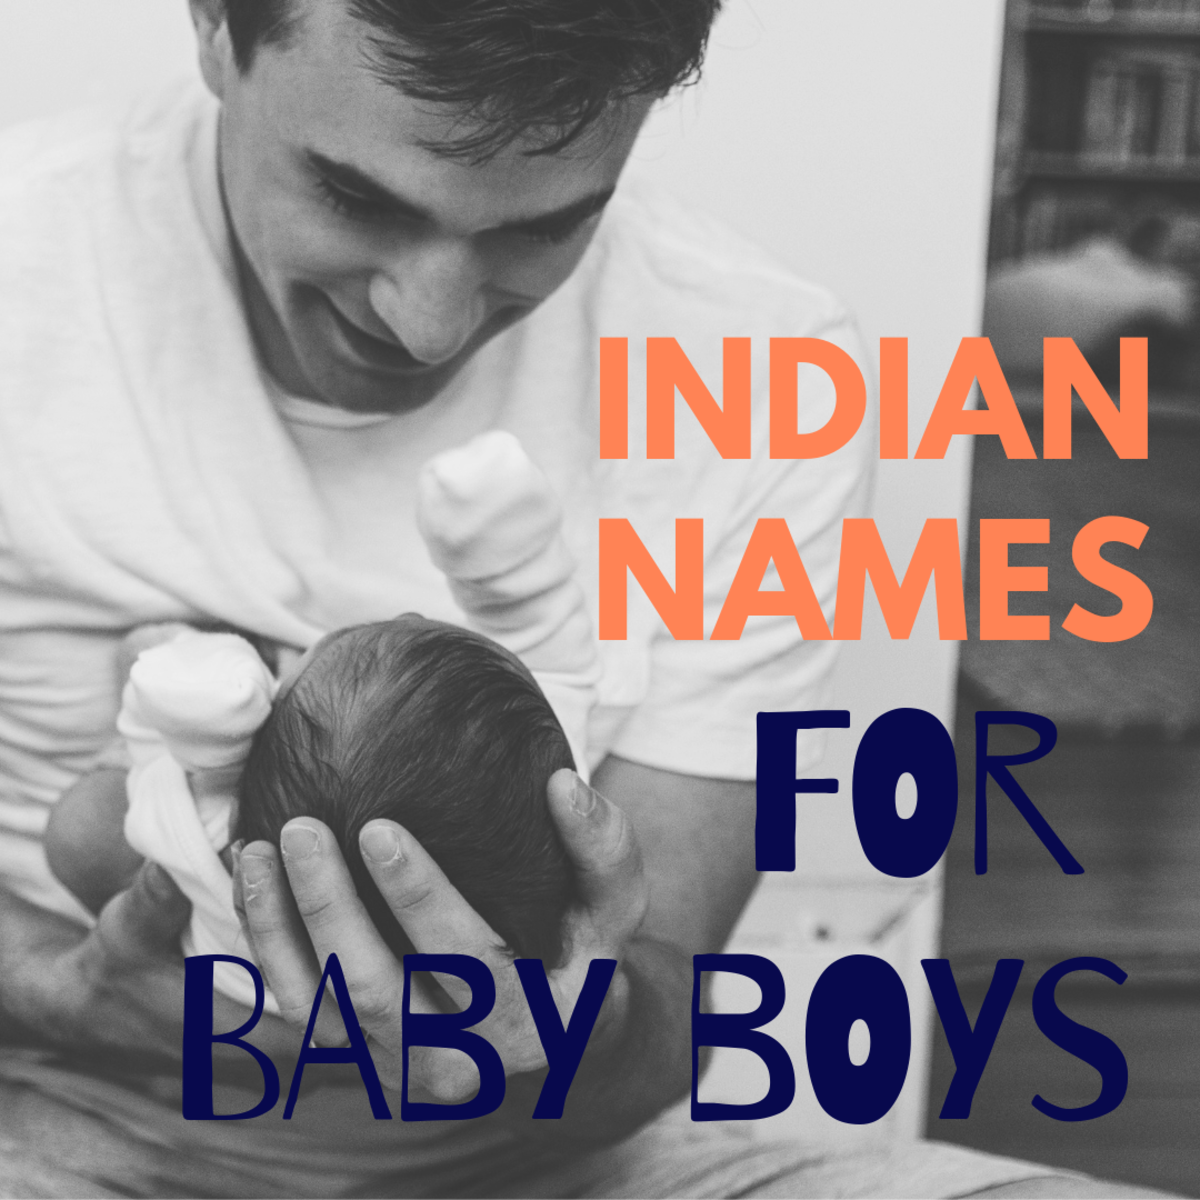 Indian Names for Baby Boys